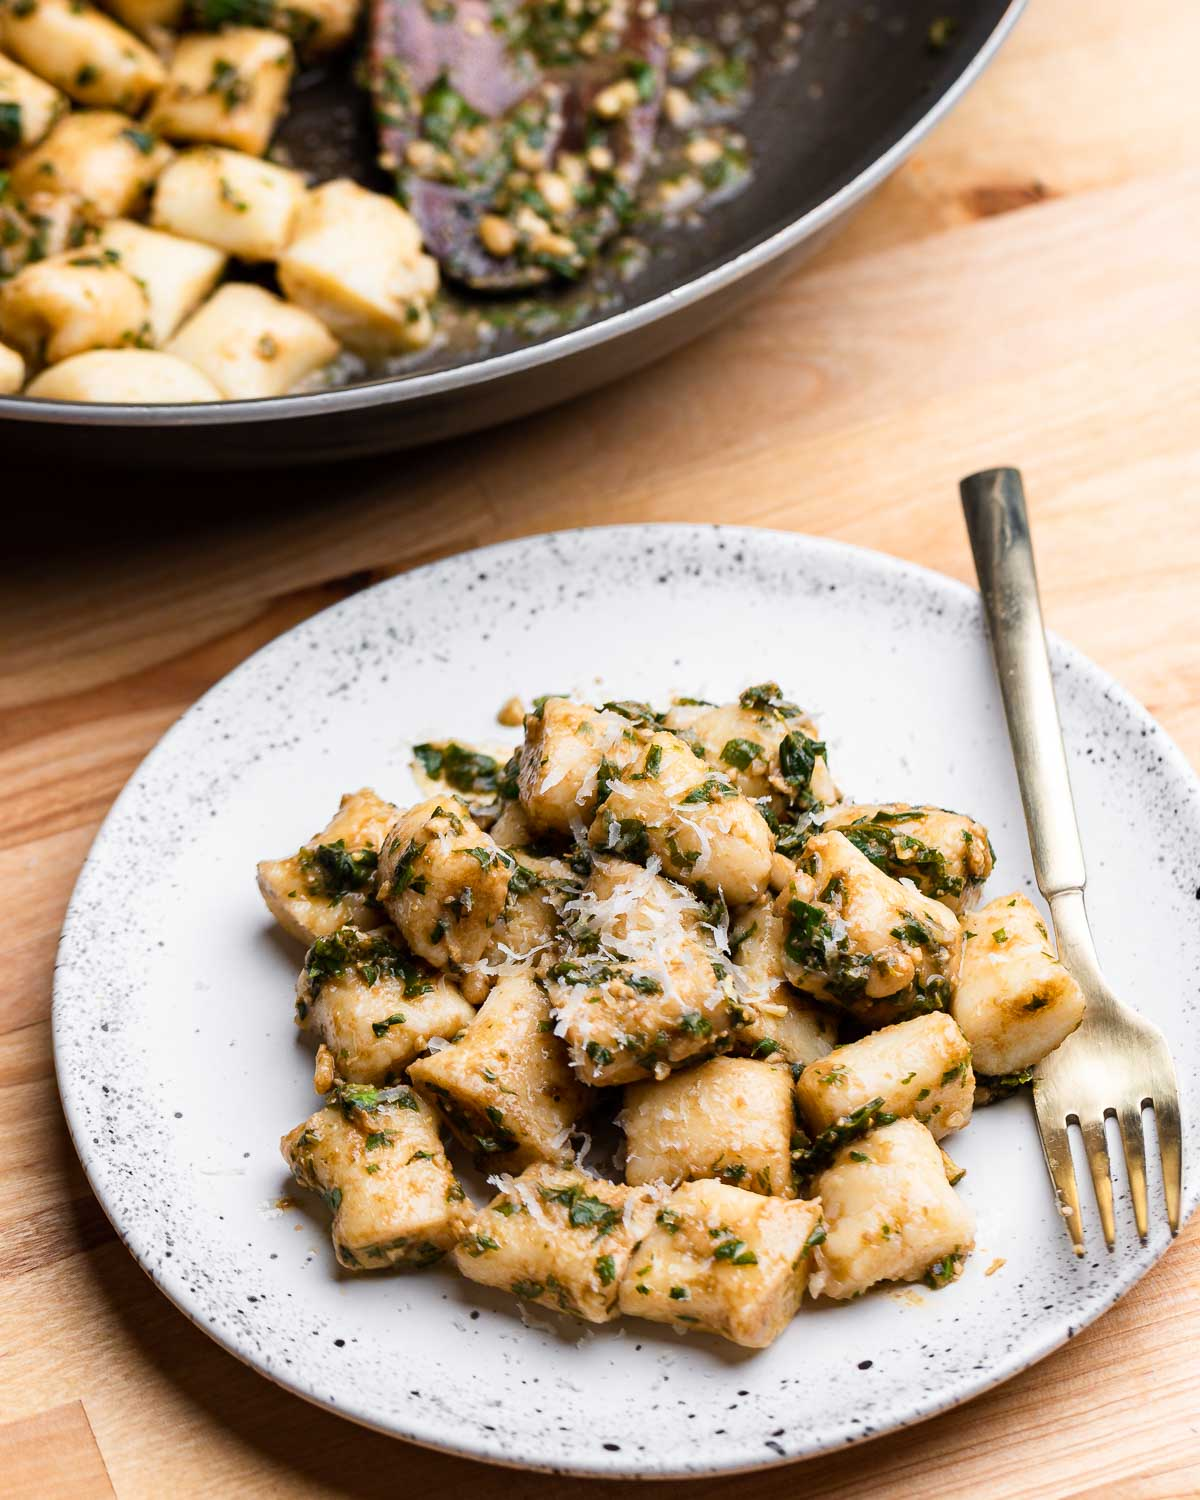 Gnocchi in white plate with brown butter and pesto.